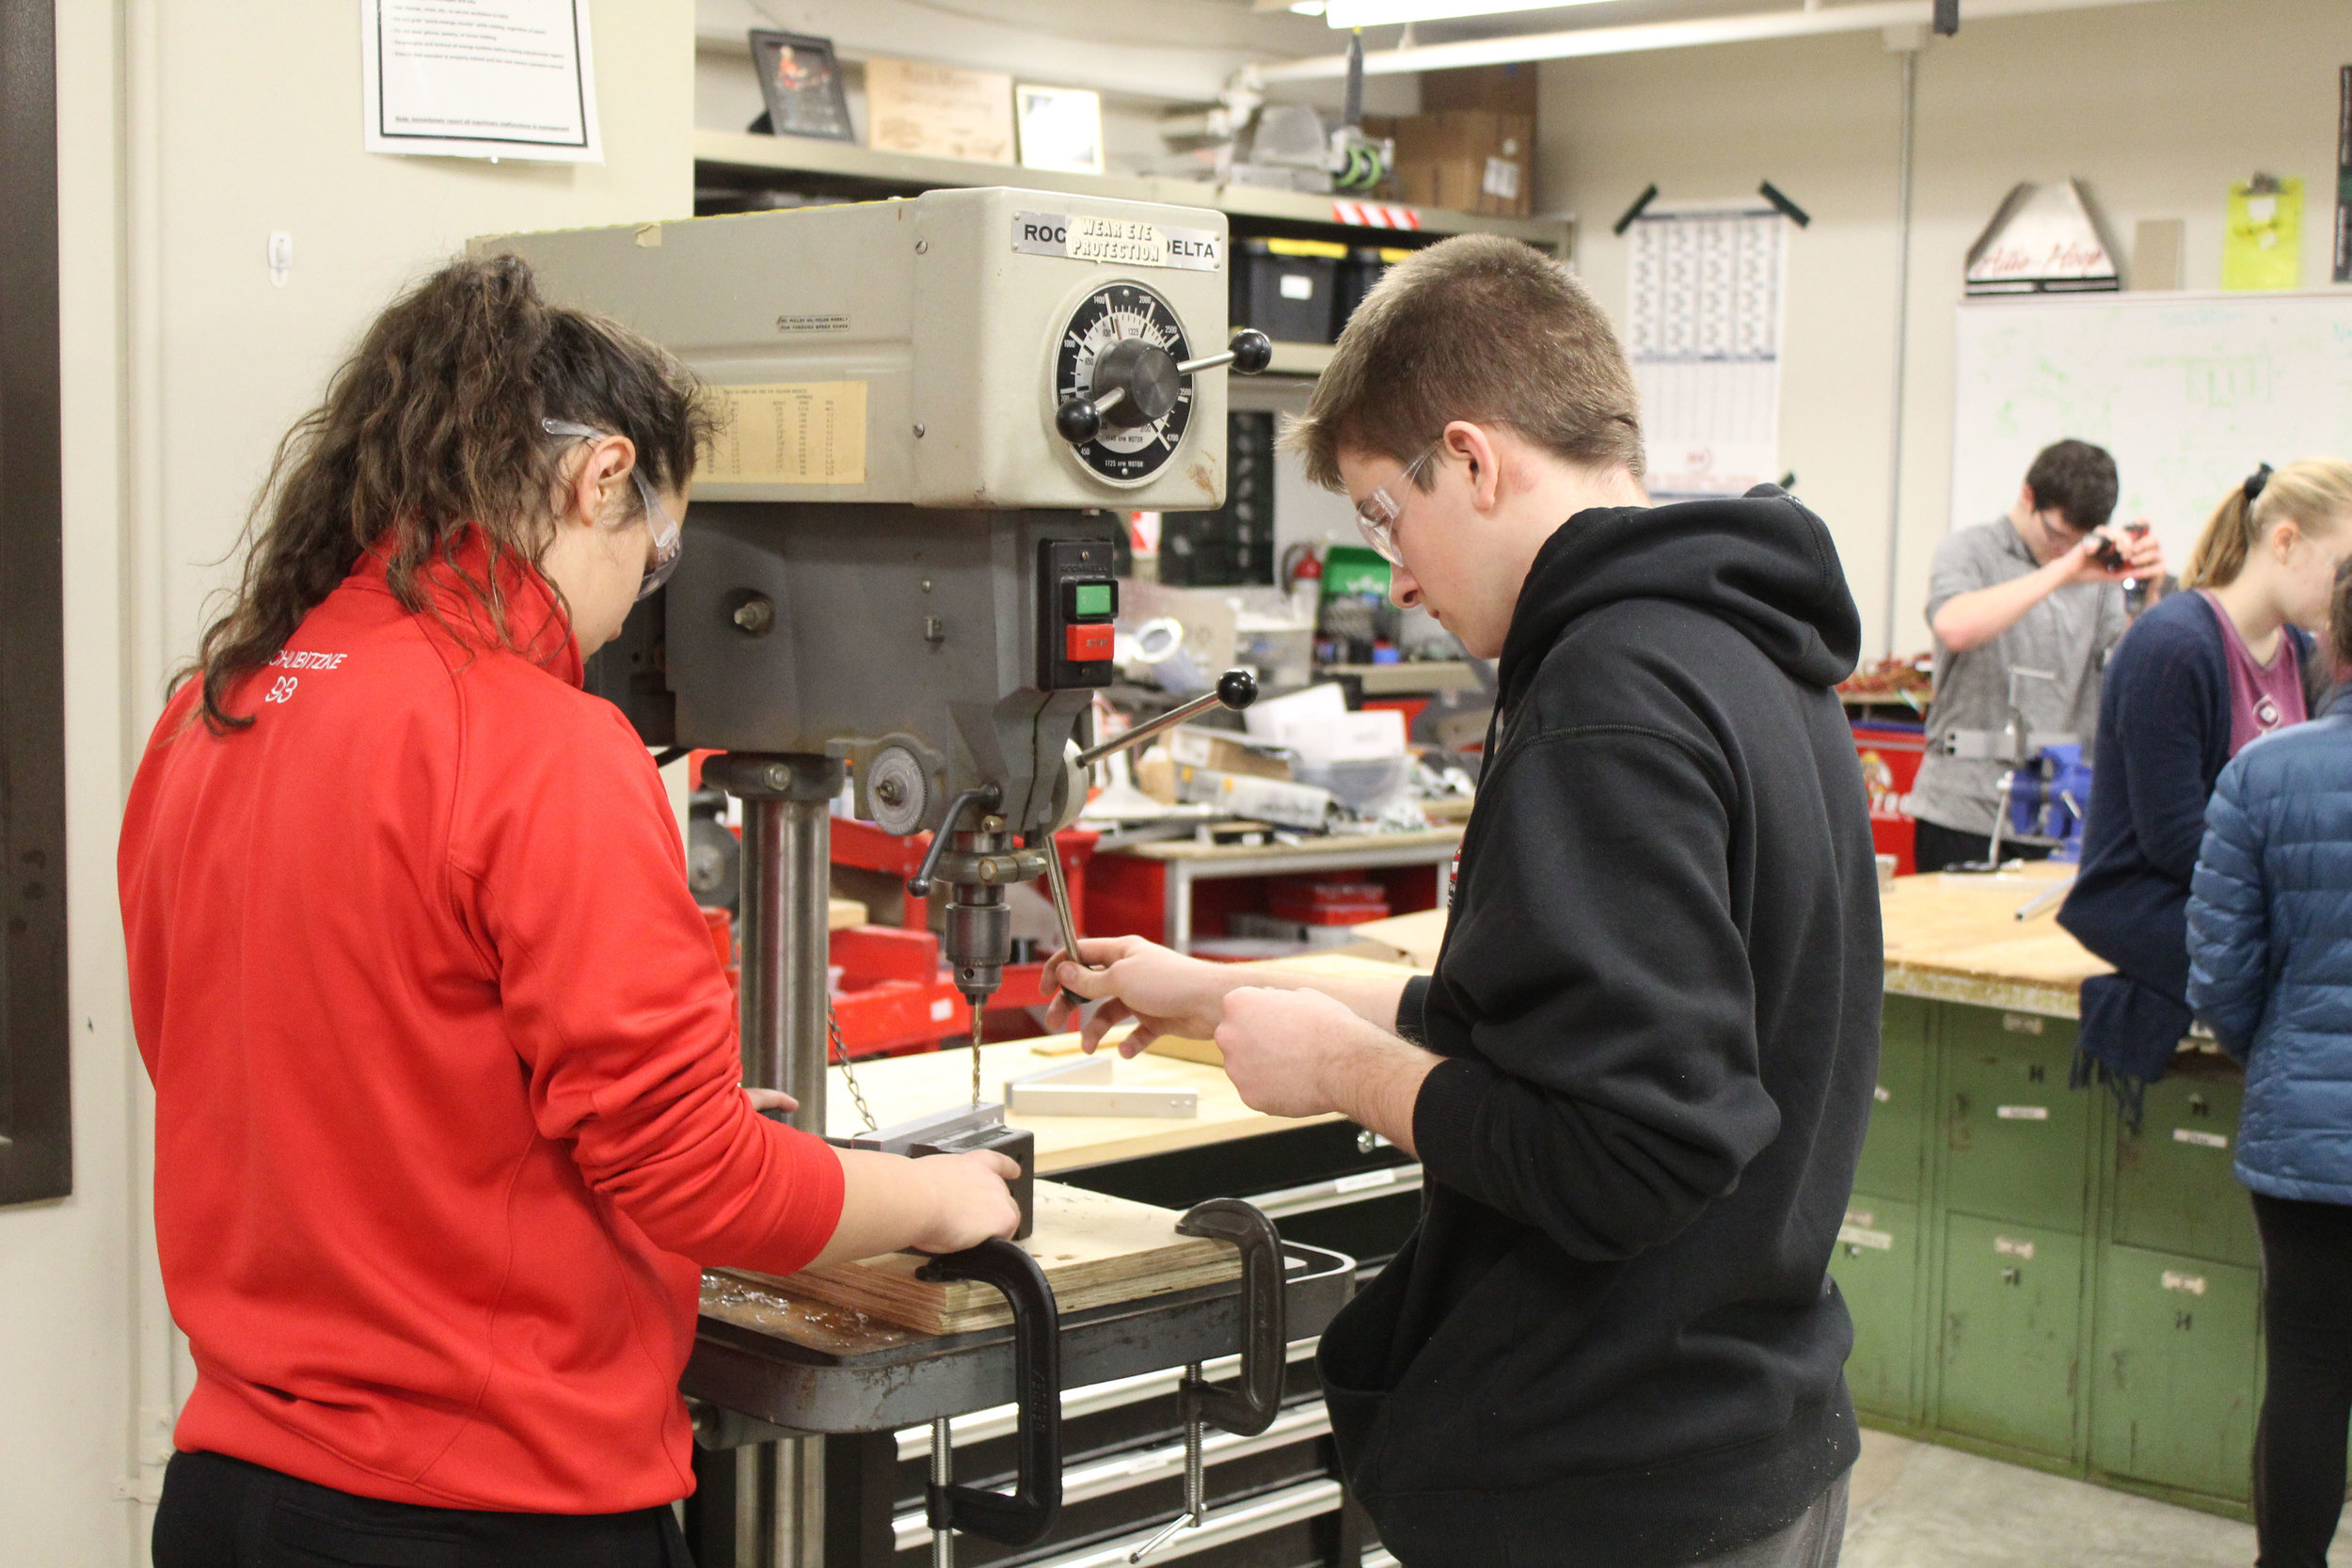 Kylene and Daniel from Build drilling pieces